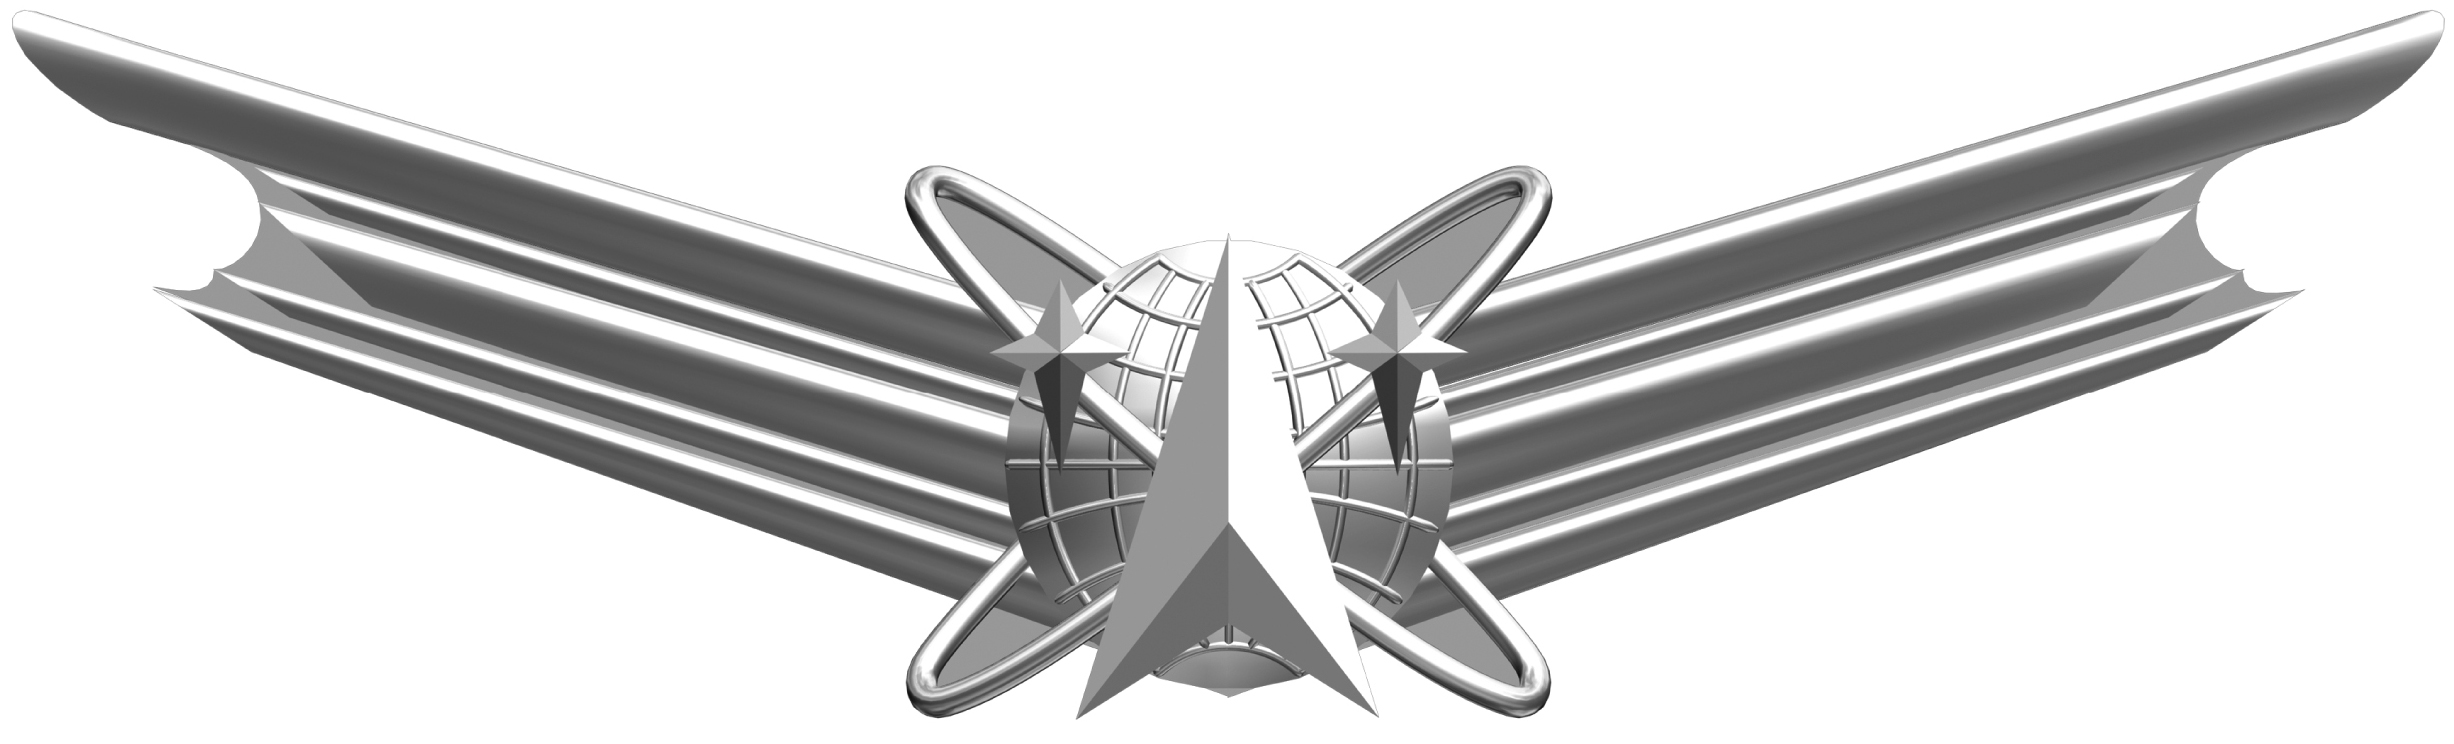 File Basic Space Badge Jpg Wikimedia Commons